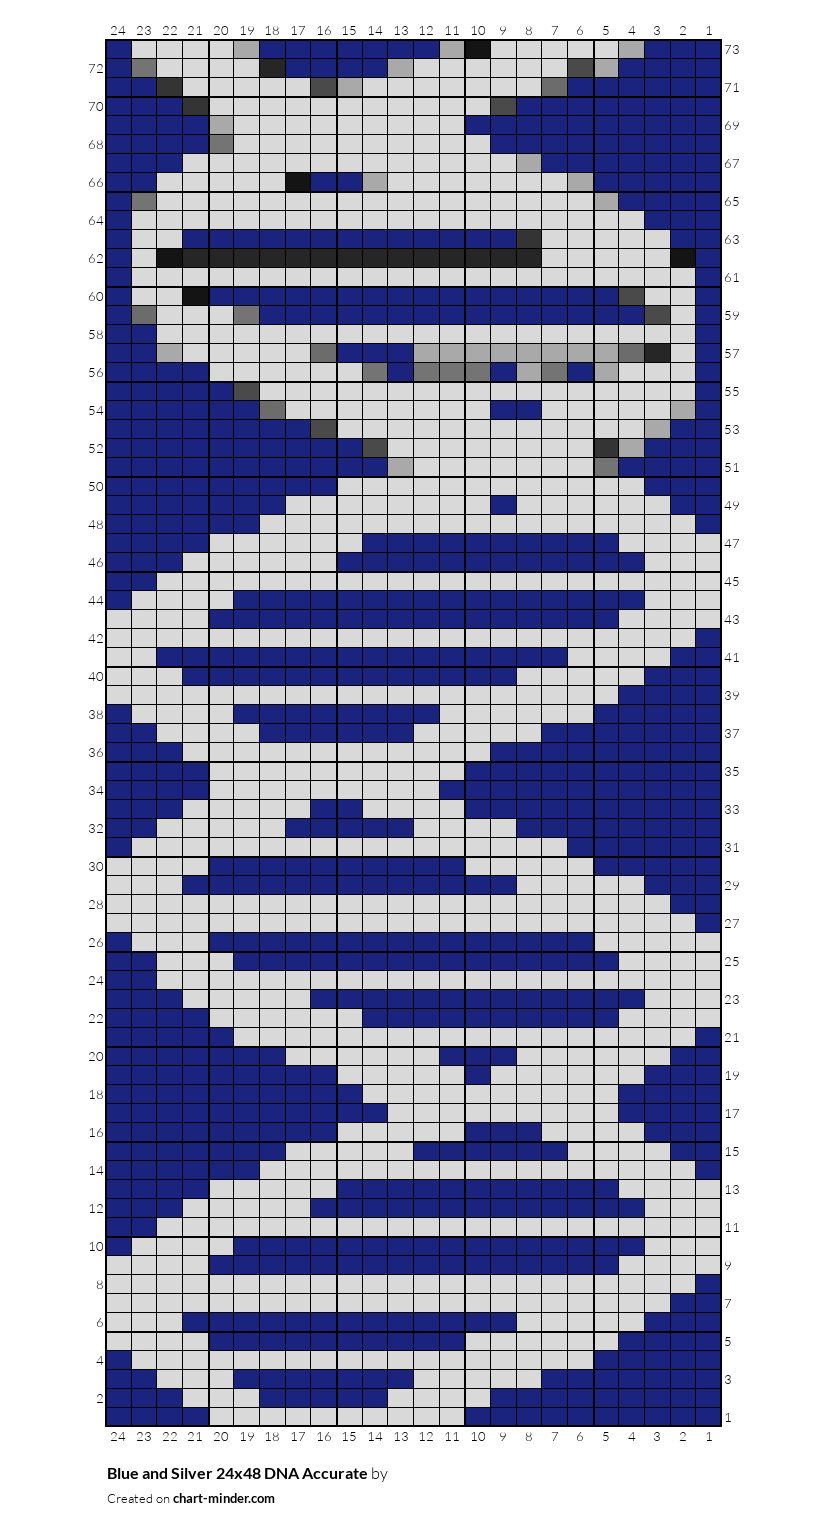 Blue and Silver 24x48 DNA Accurate